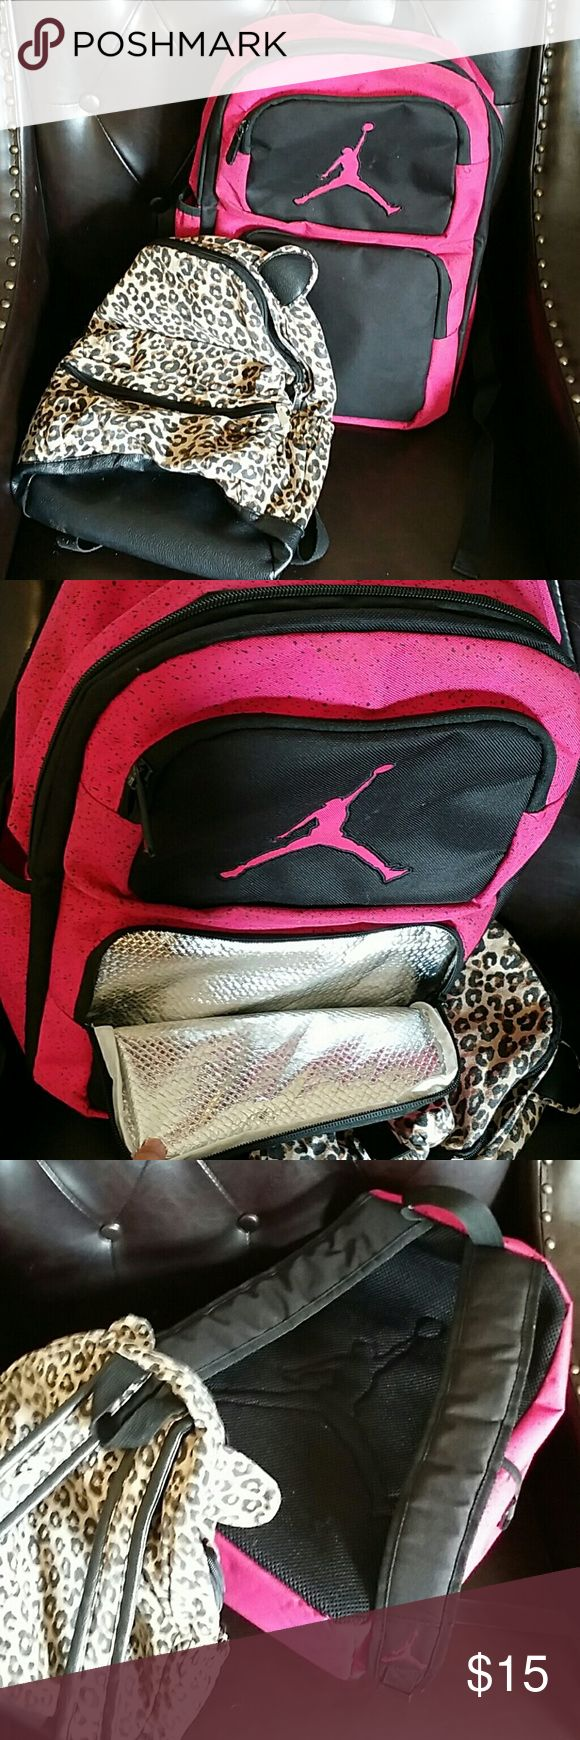 Back to school back packs The smaller back pack is from target and is big enough for a preschool kid. It was lightly used. The pink and black jordan bag is very large, has room for all the books with space to spare. It also has a cooler in front for lunches and was never used before. 15 dollars for both. 10 for the pink and black one or 5 for the leopard one. Prices are firm. Bags Backpacks